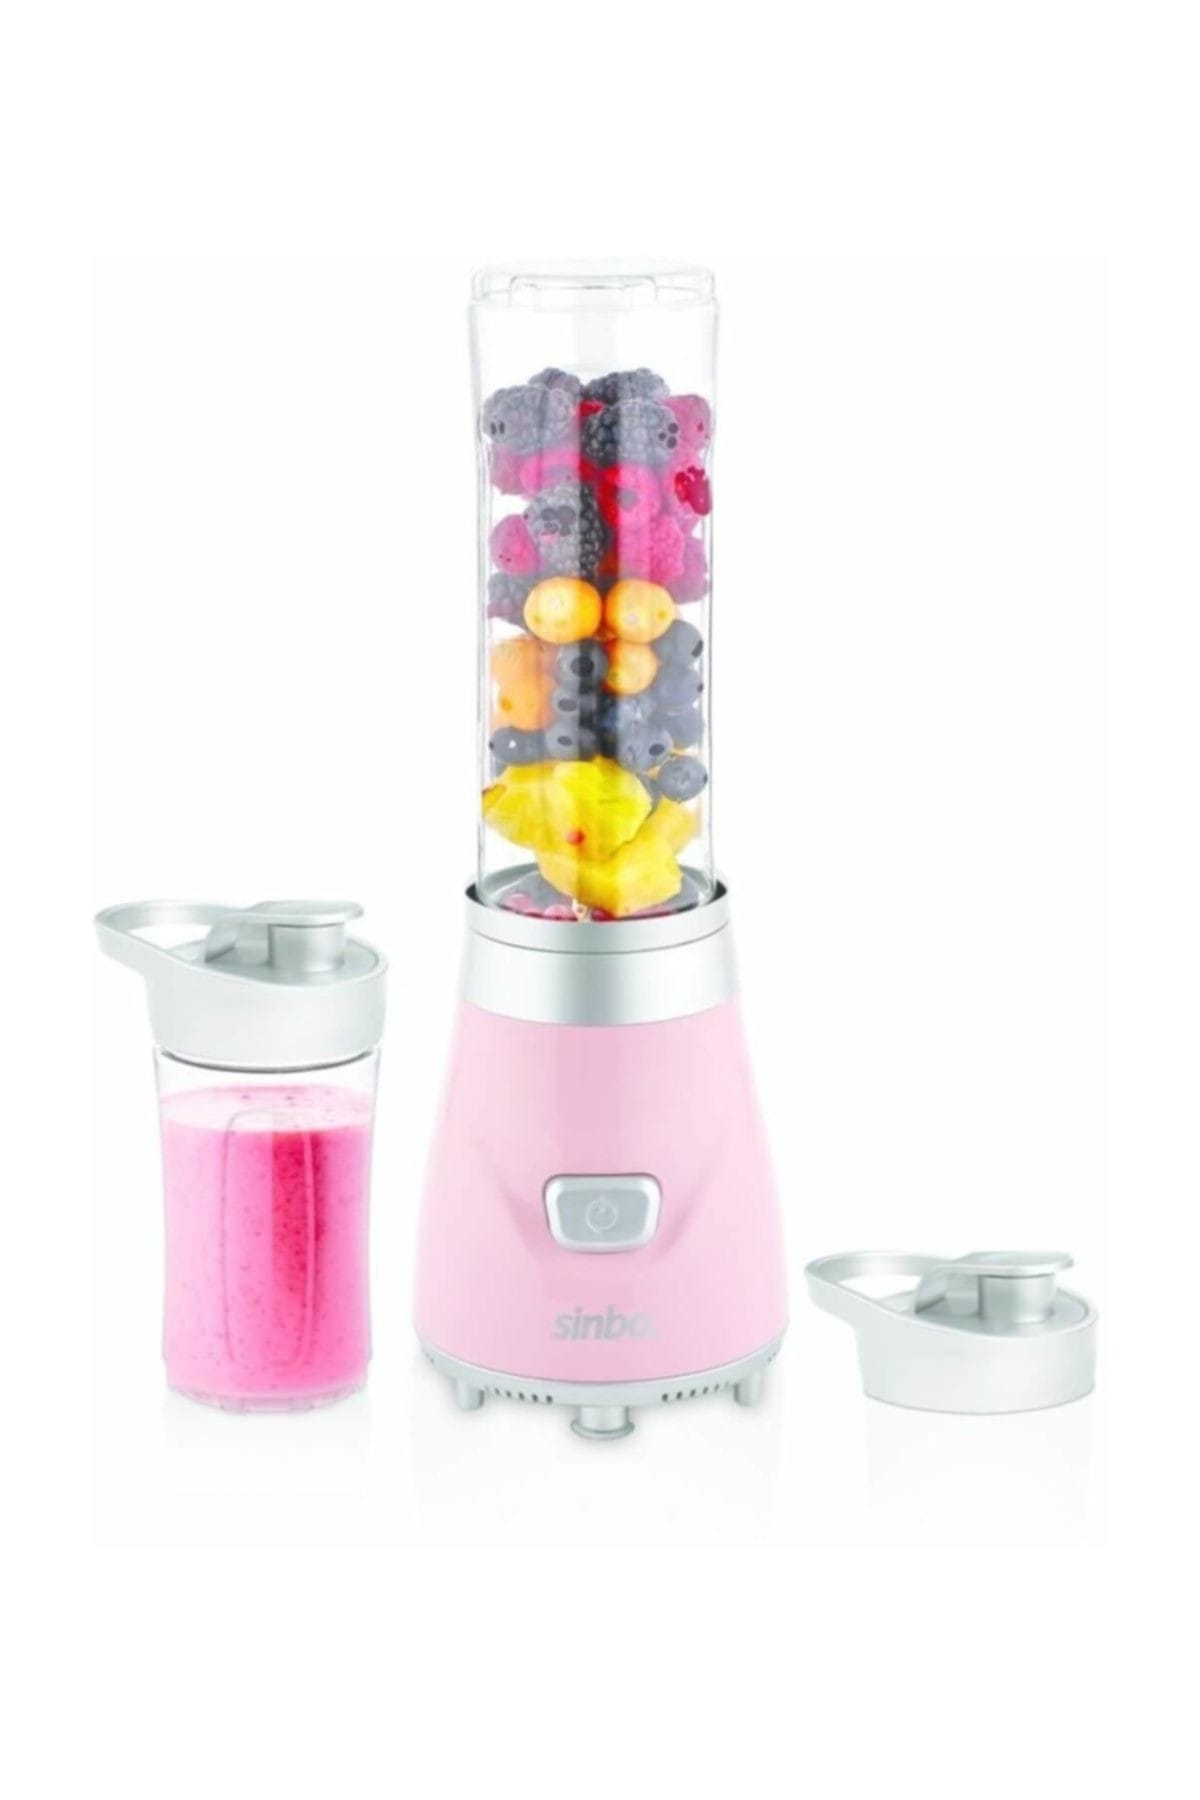 Sinbo SHB 3150 Smoothie Blender Seti 1